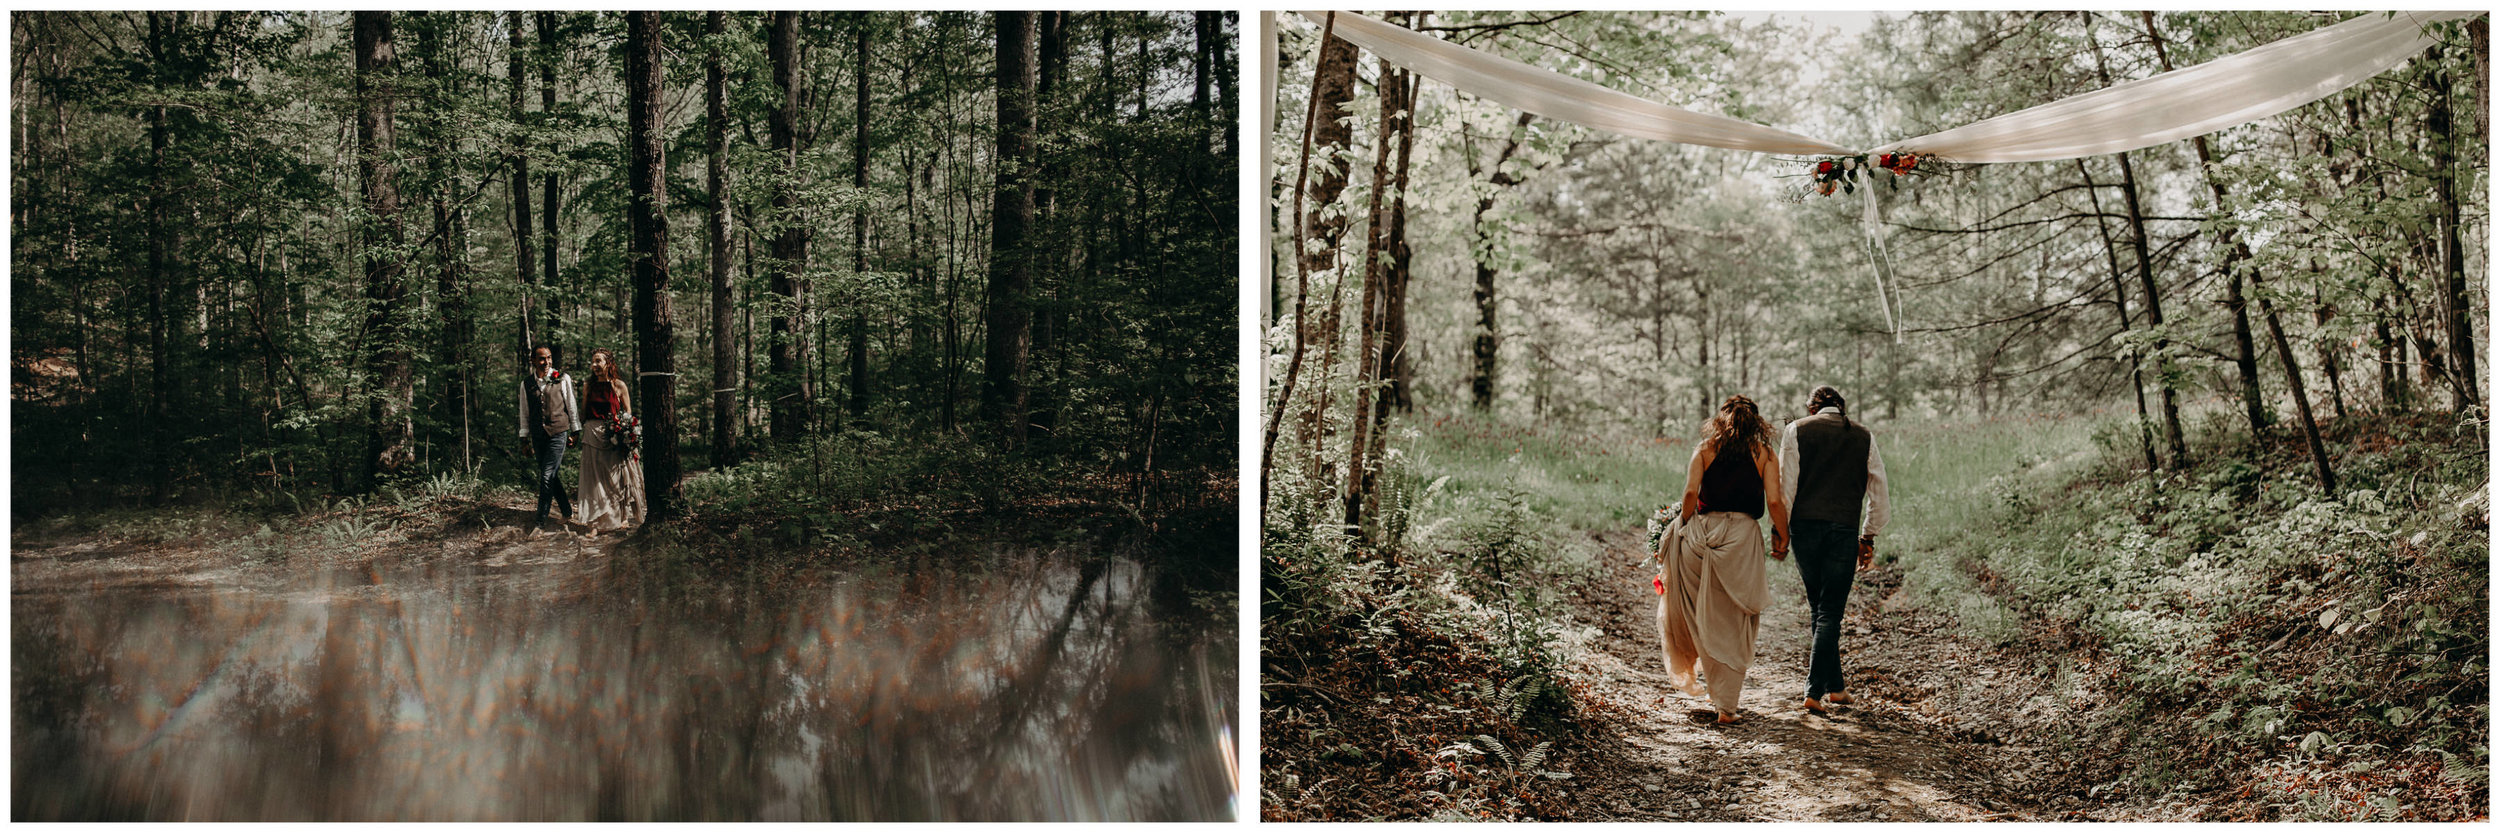 52- Forest wedding boho enchanched fairytale wedding atlanta - ga , intimate, elopement, nature, greens, good vibes. Aline Marin Photography .jpg